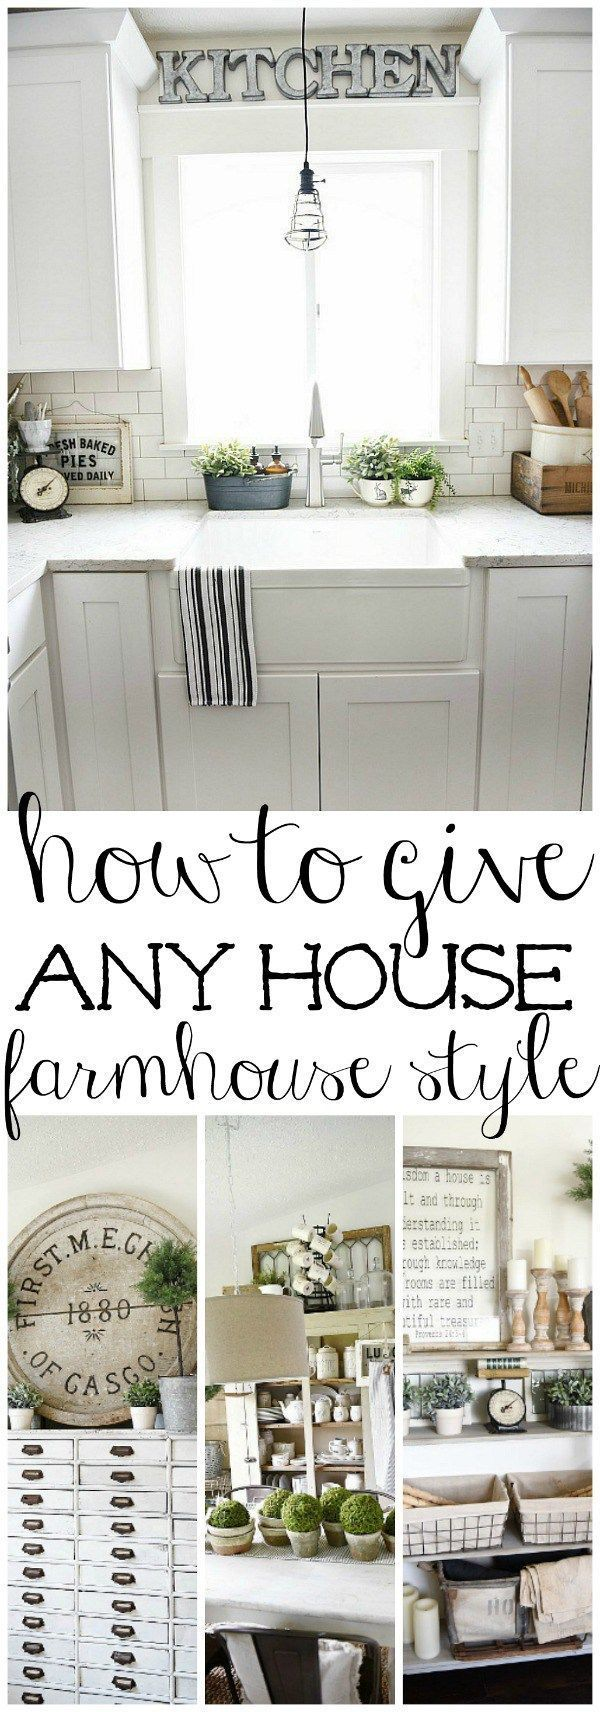 Best 25 Farmhouse kitchens ideas on Pinterest White farmhouse